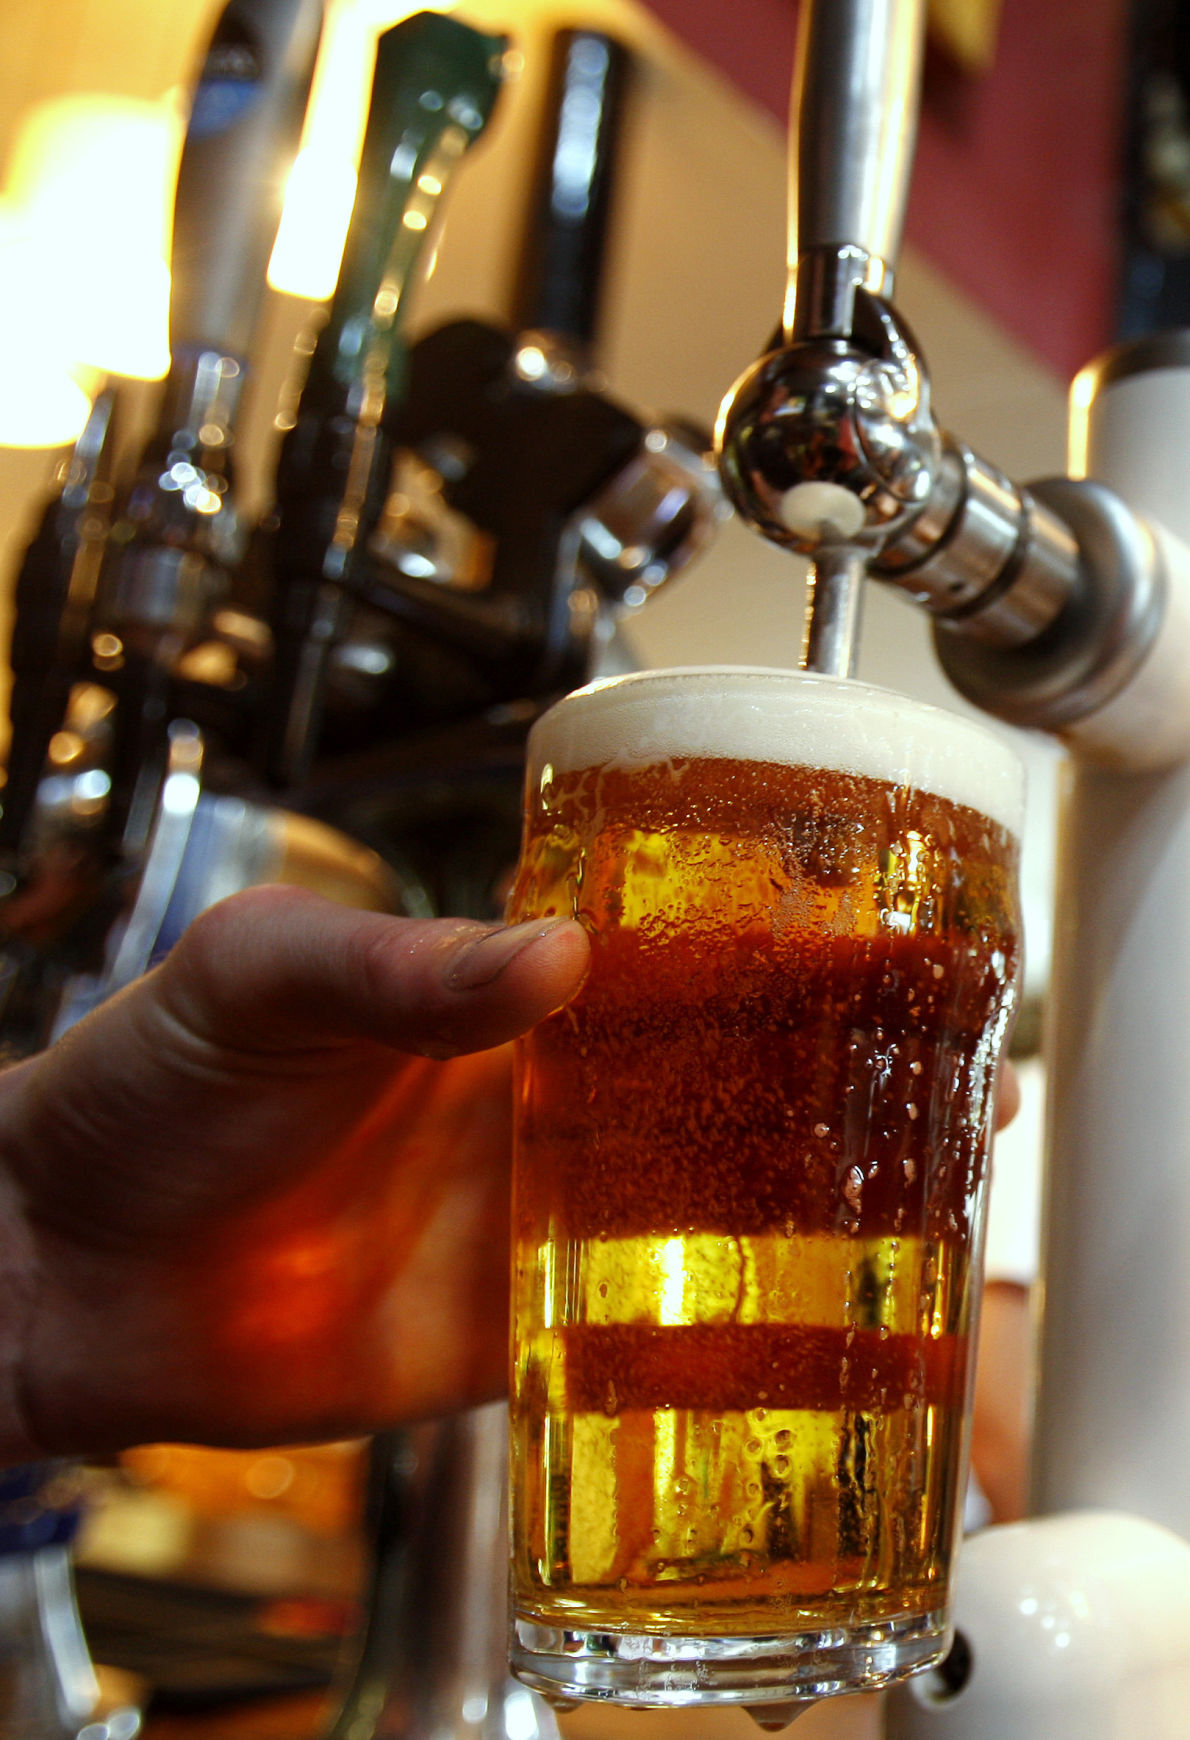 Brew fans raise pint to victory